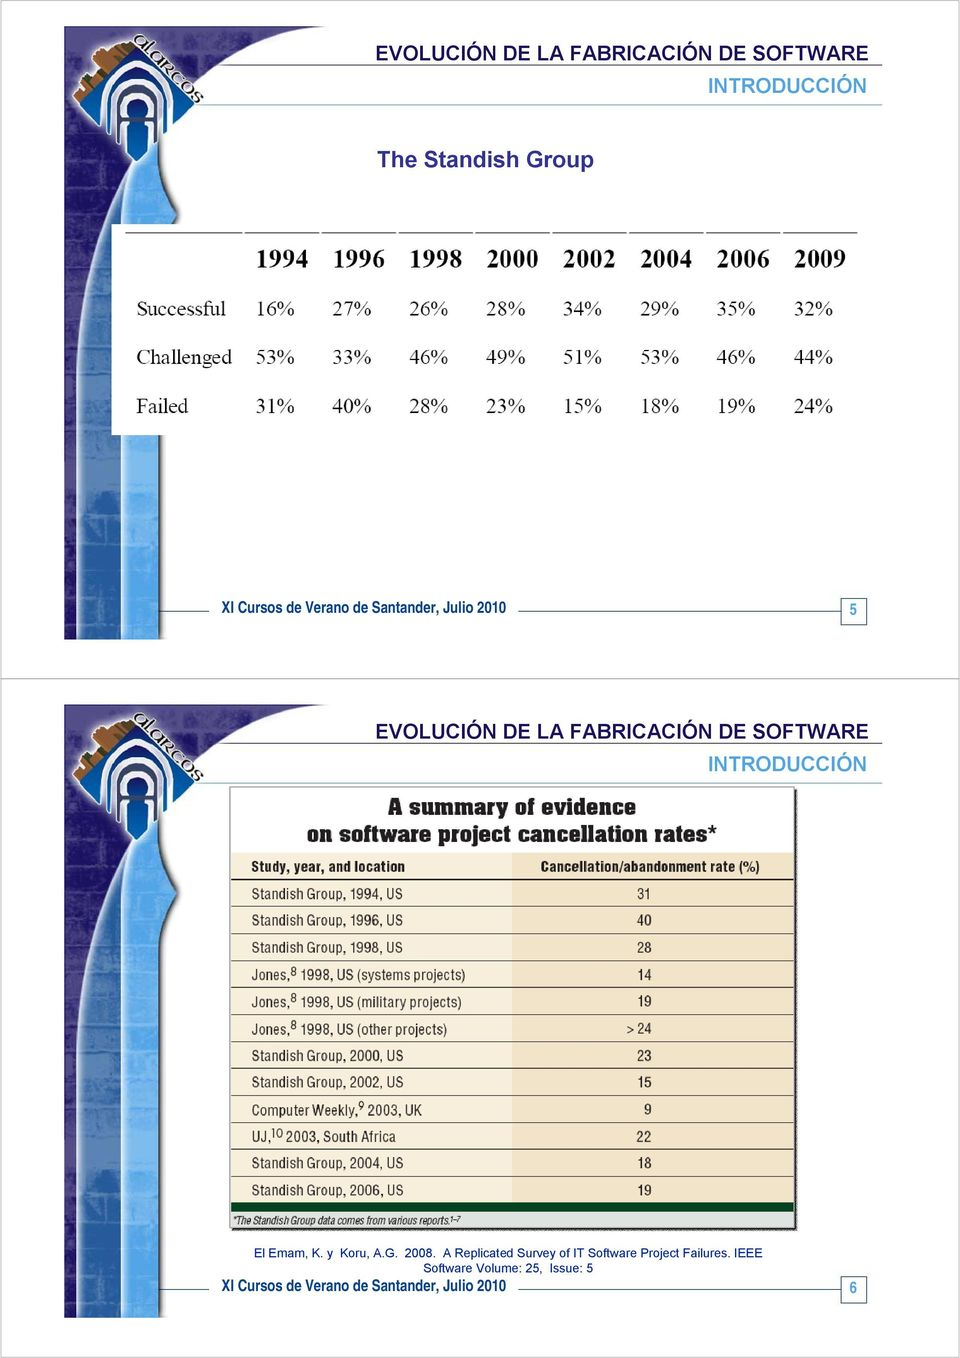 2008. A Replicated Survey of IT Software Project Failures.